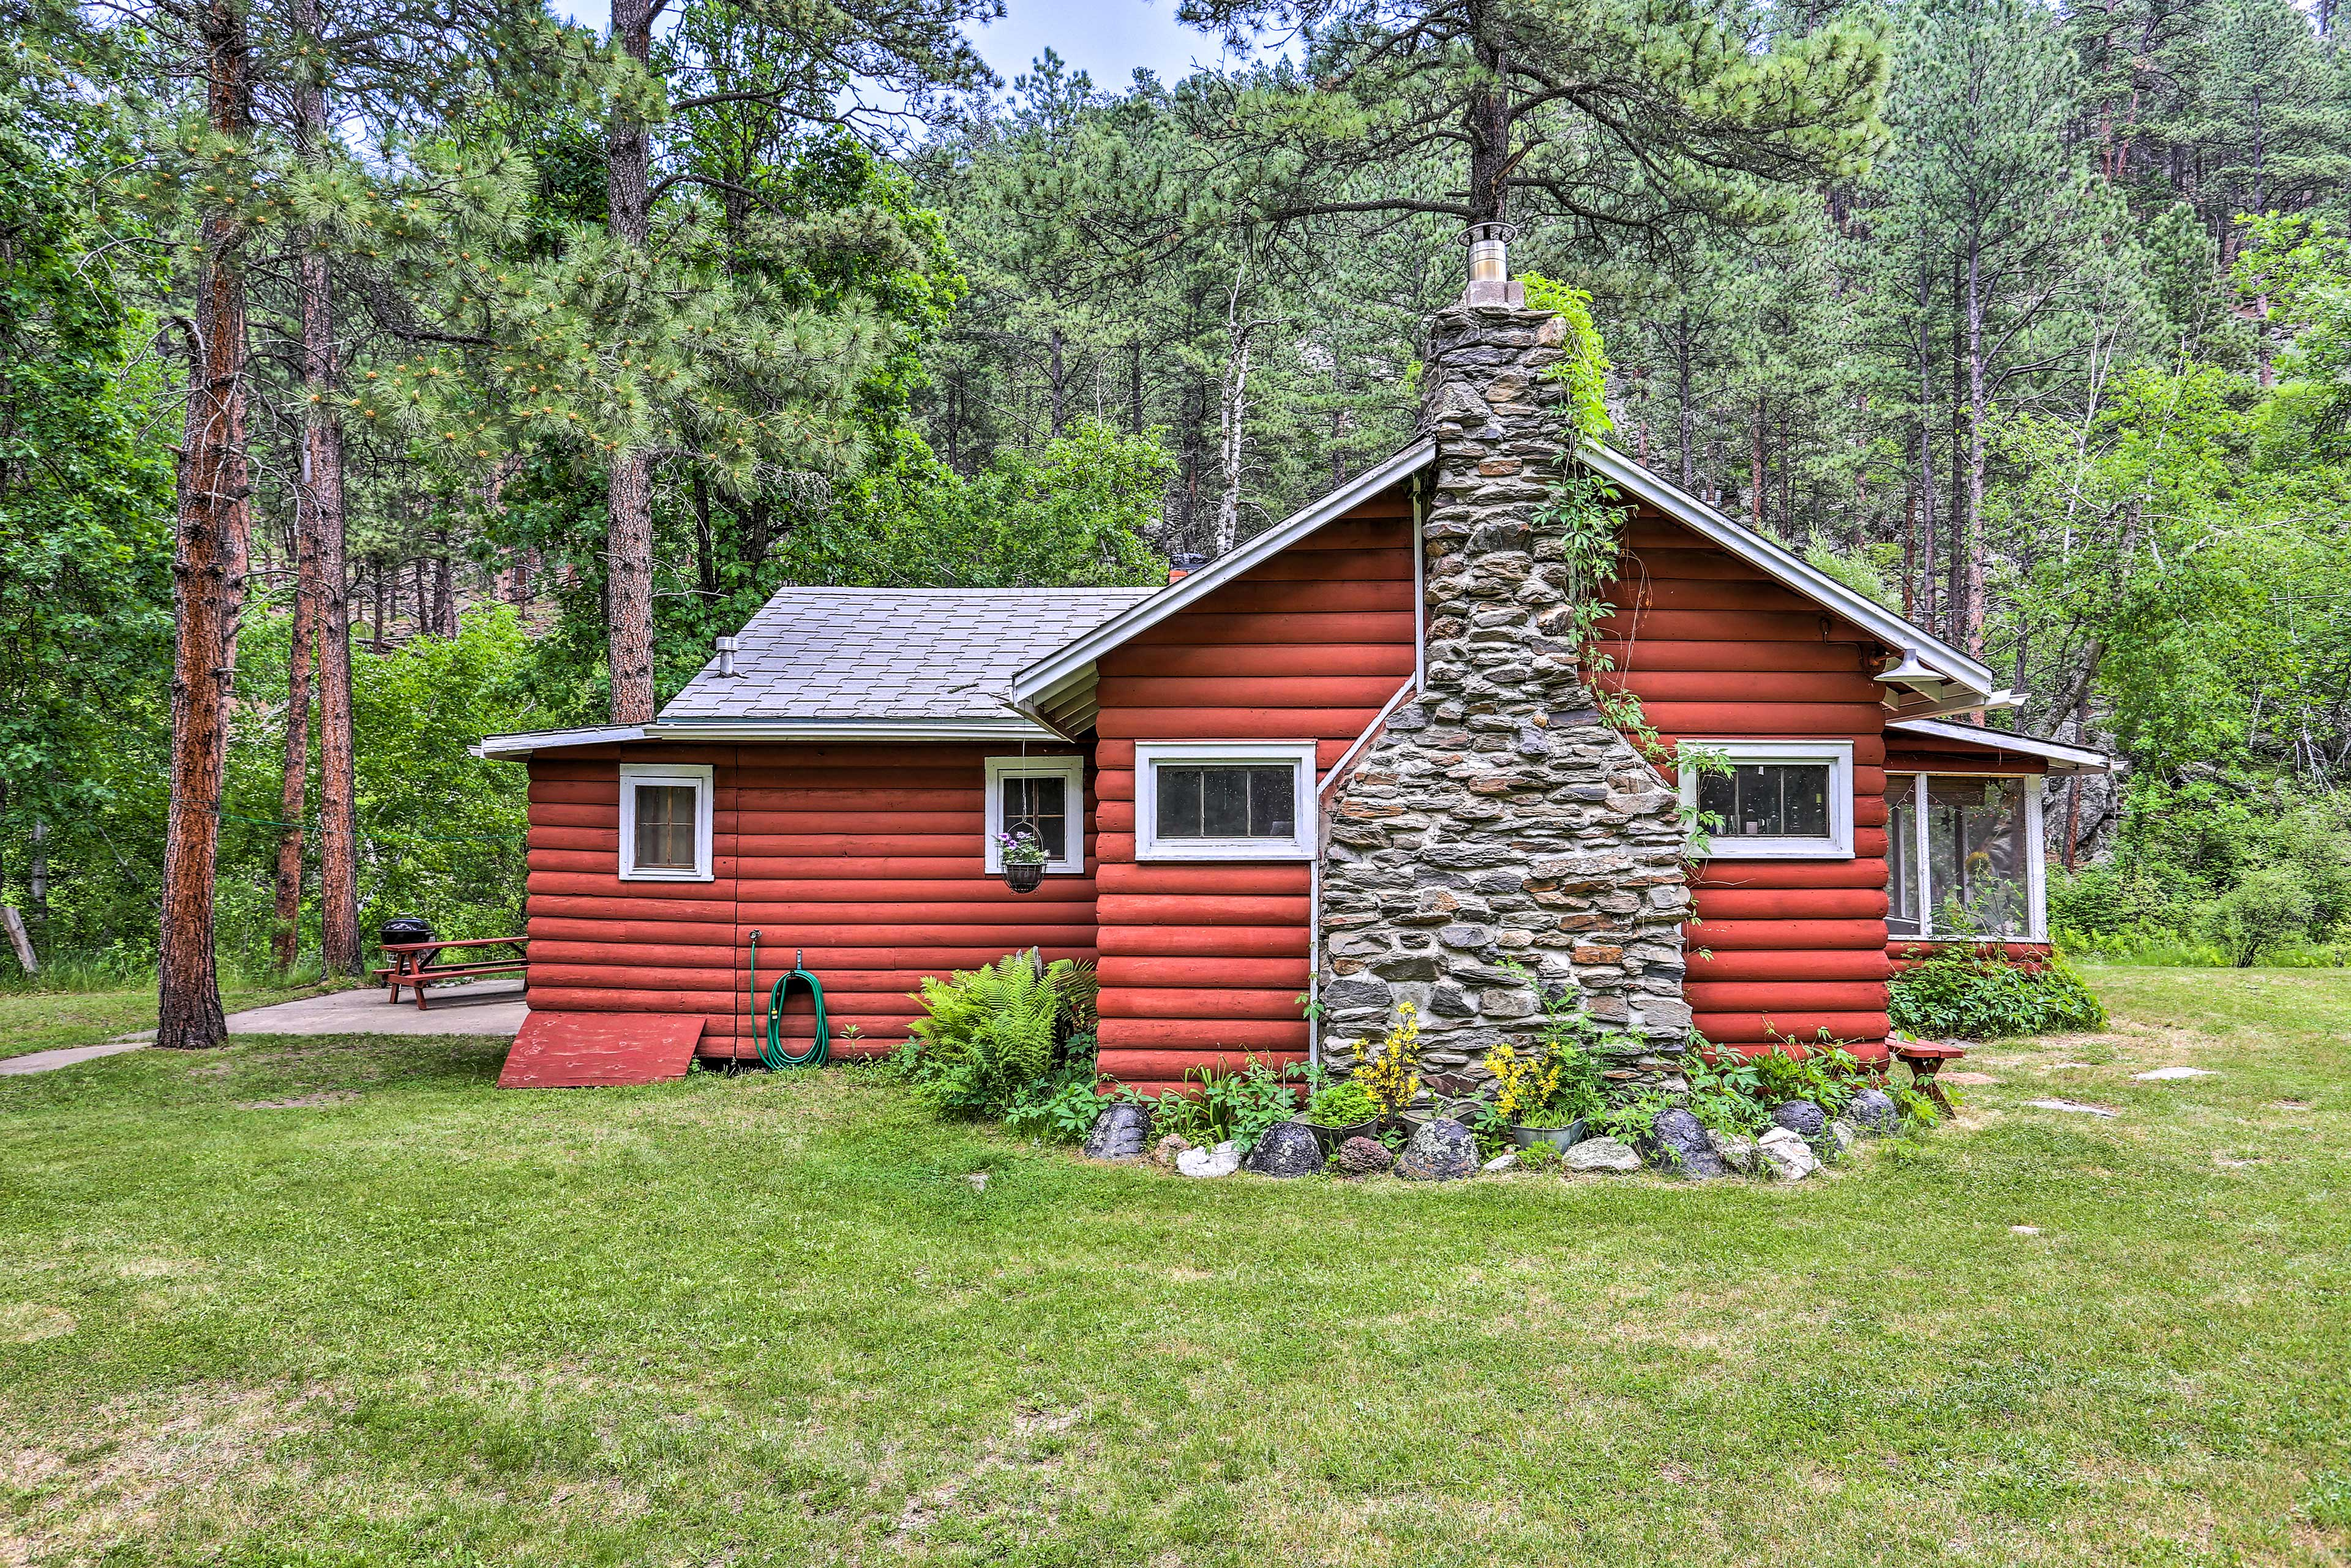 Originally built for Mount Rushmore workers, this home is full of history.